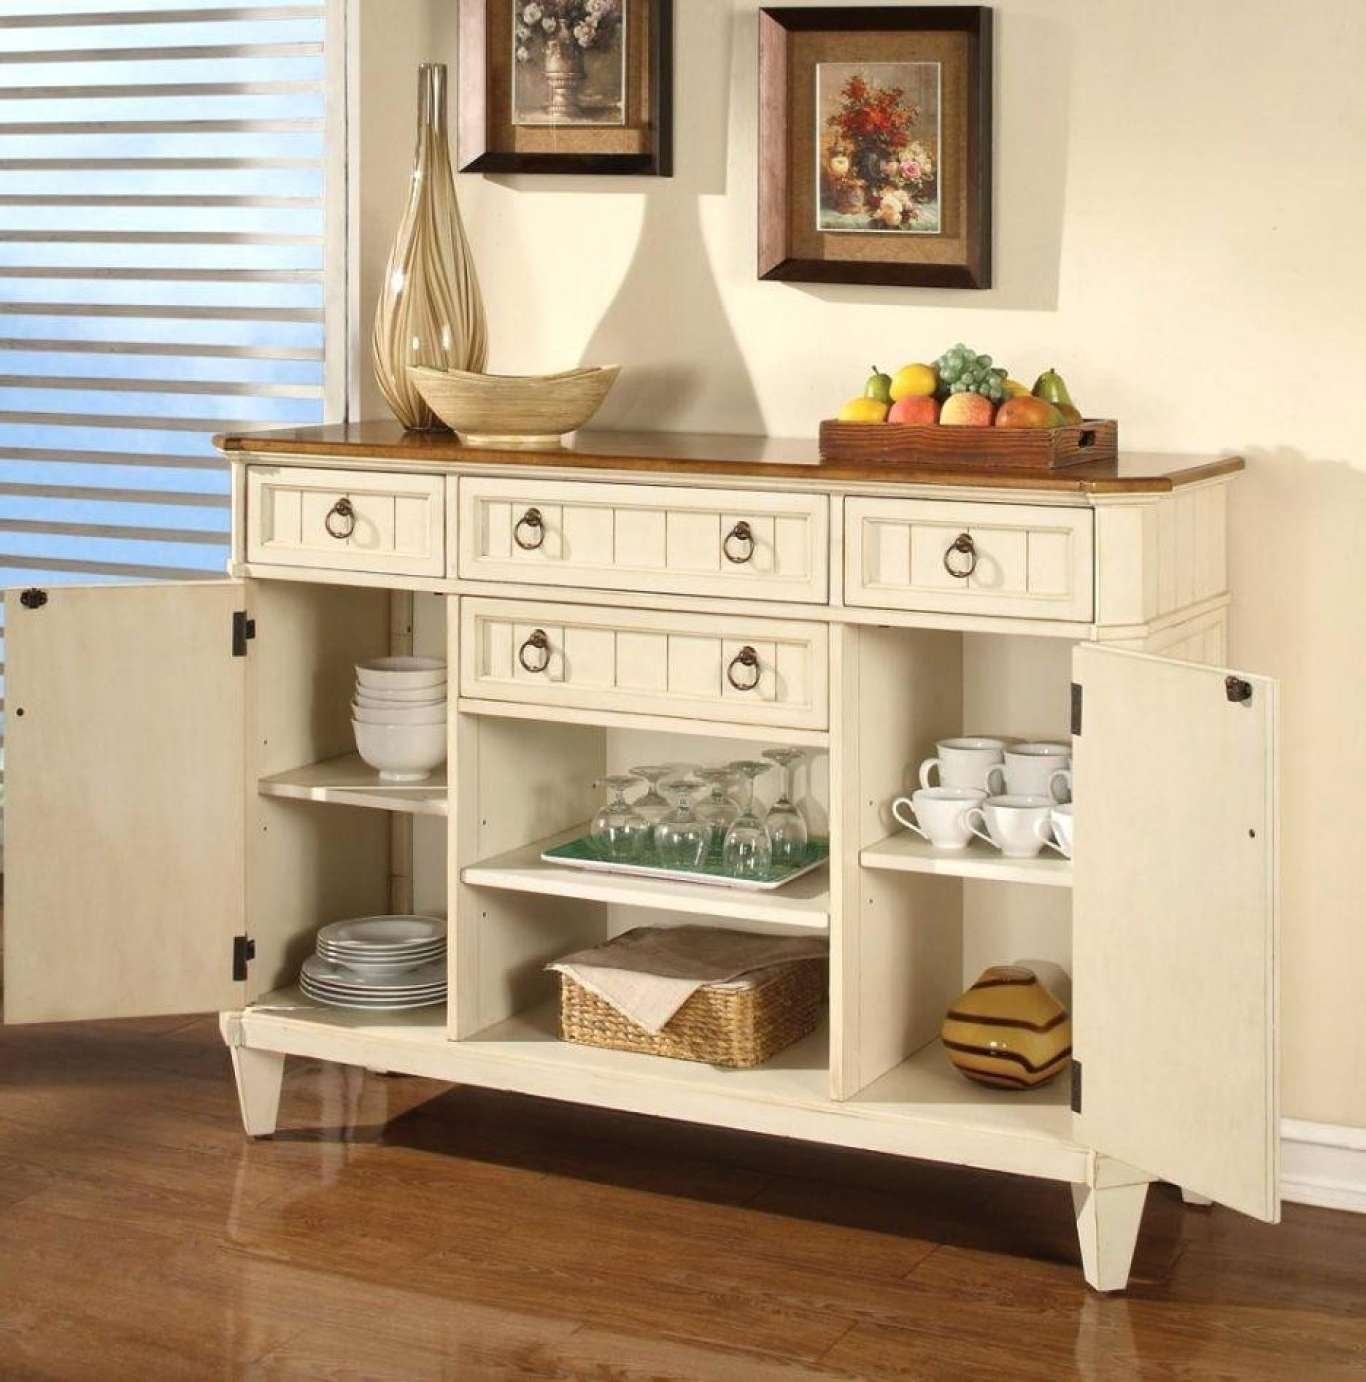 Terrific Dining Room Side Table Buffet Photos Best Image Engine With Overstock Sideboards View